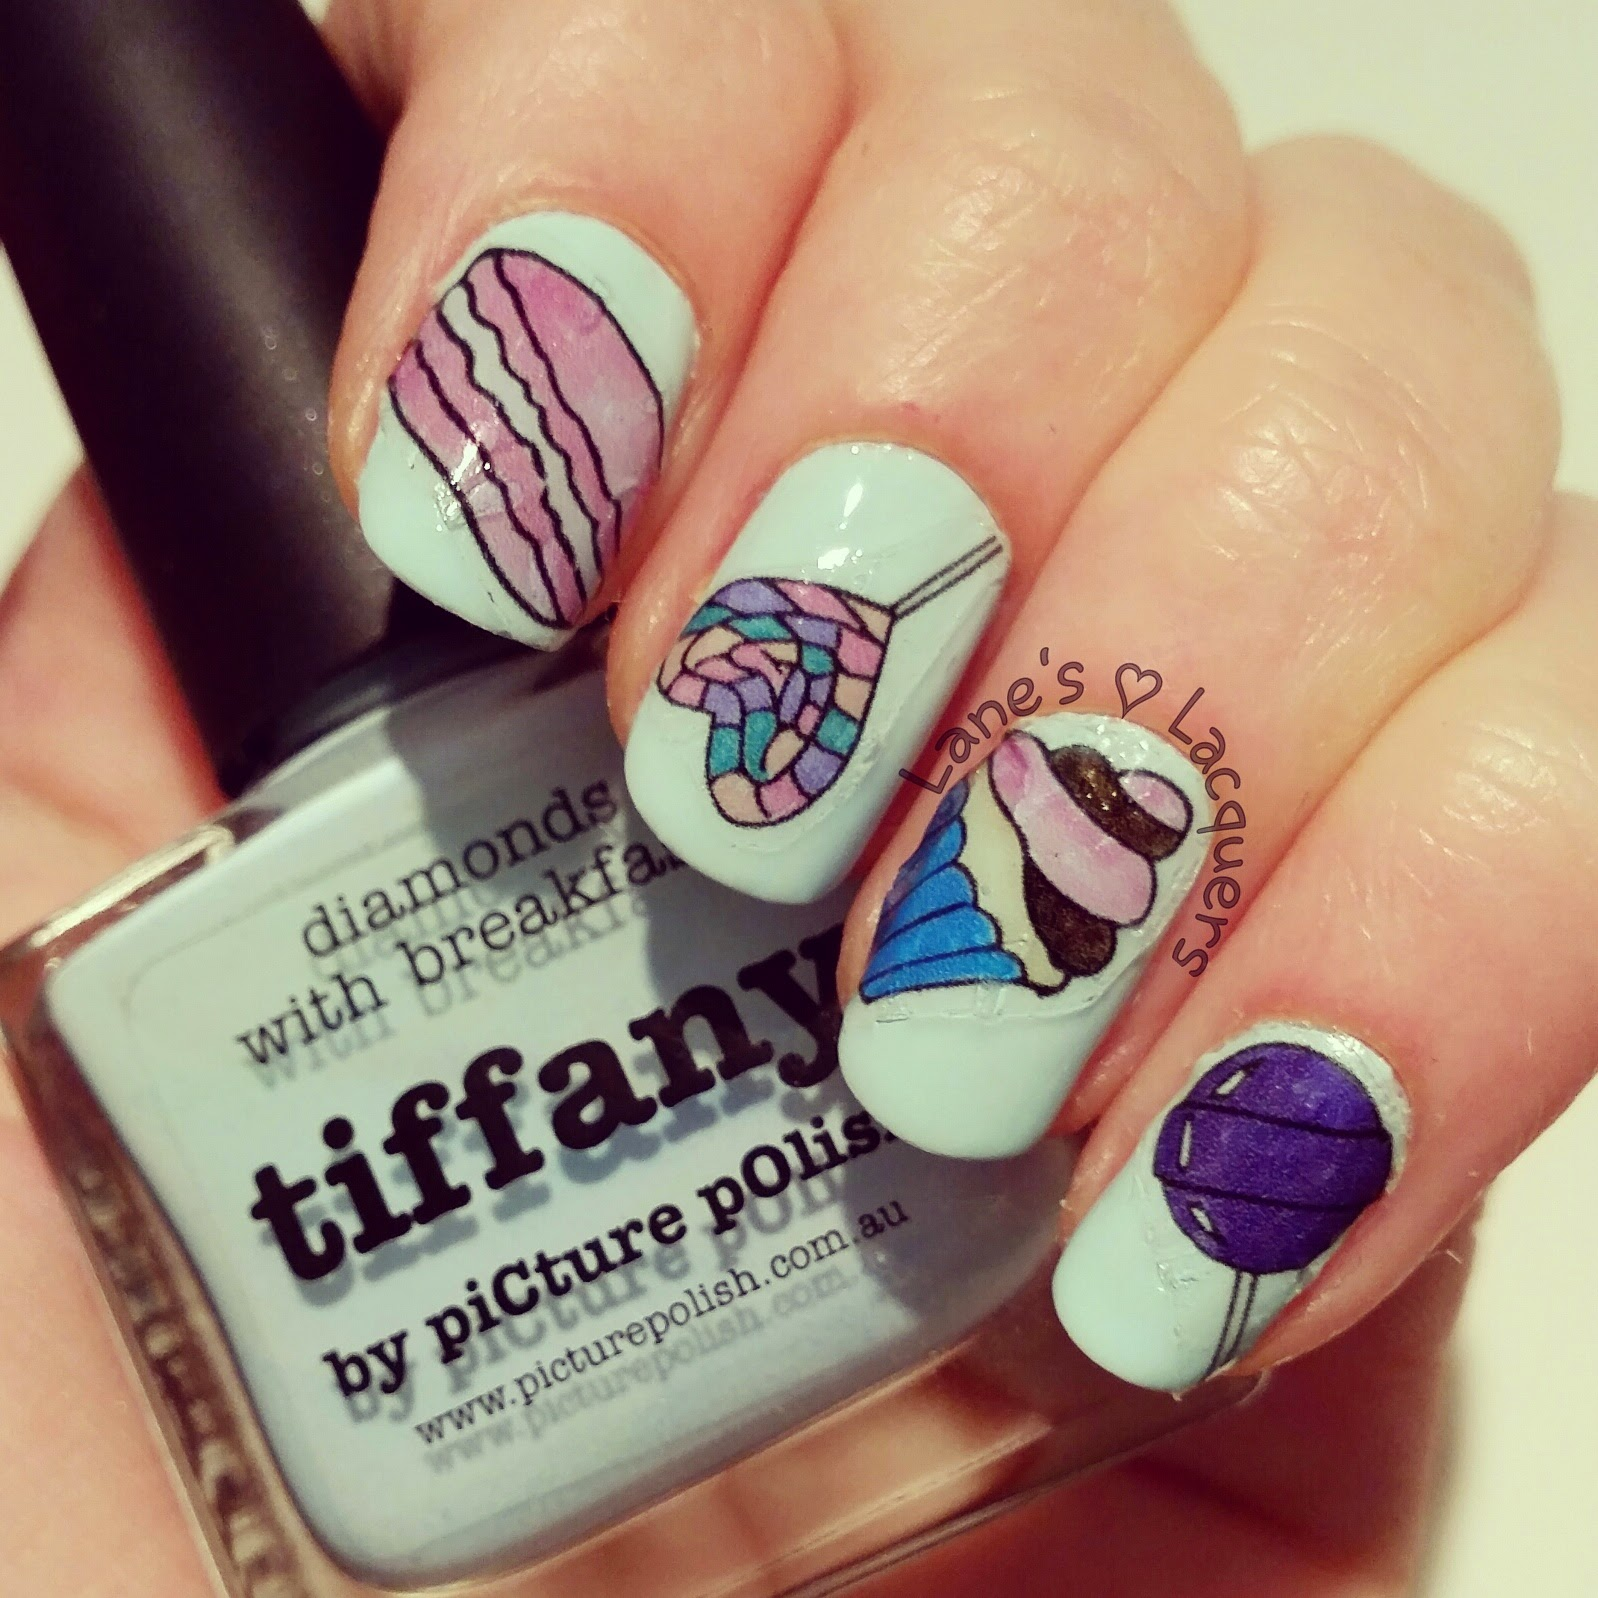 nail-doodles-sweets-cakes-water-transfer-nail-art (2)